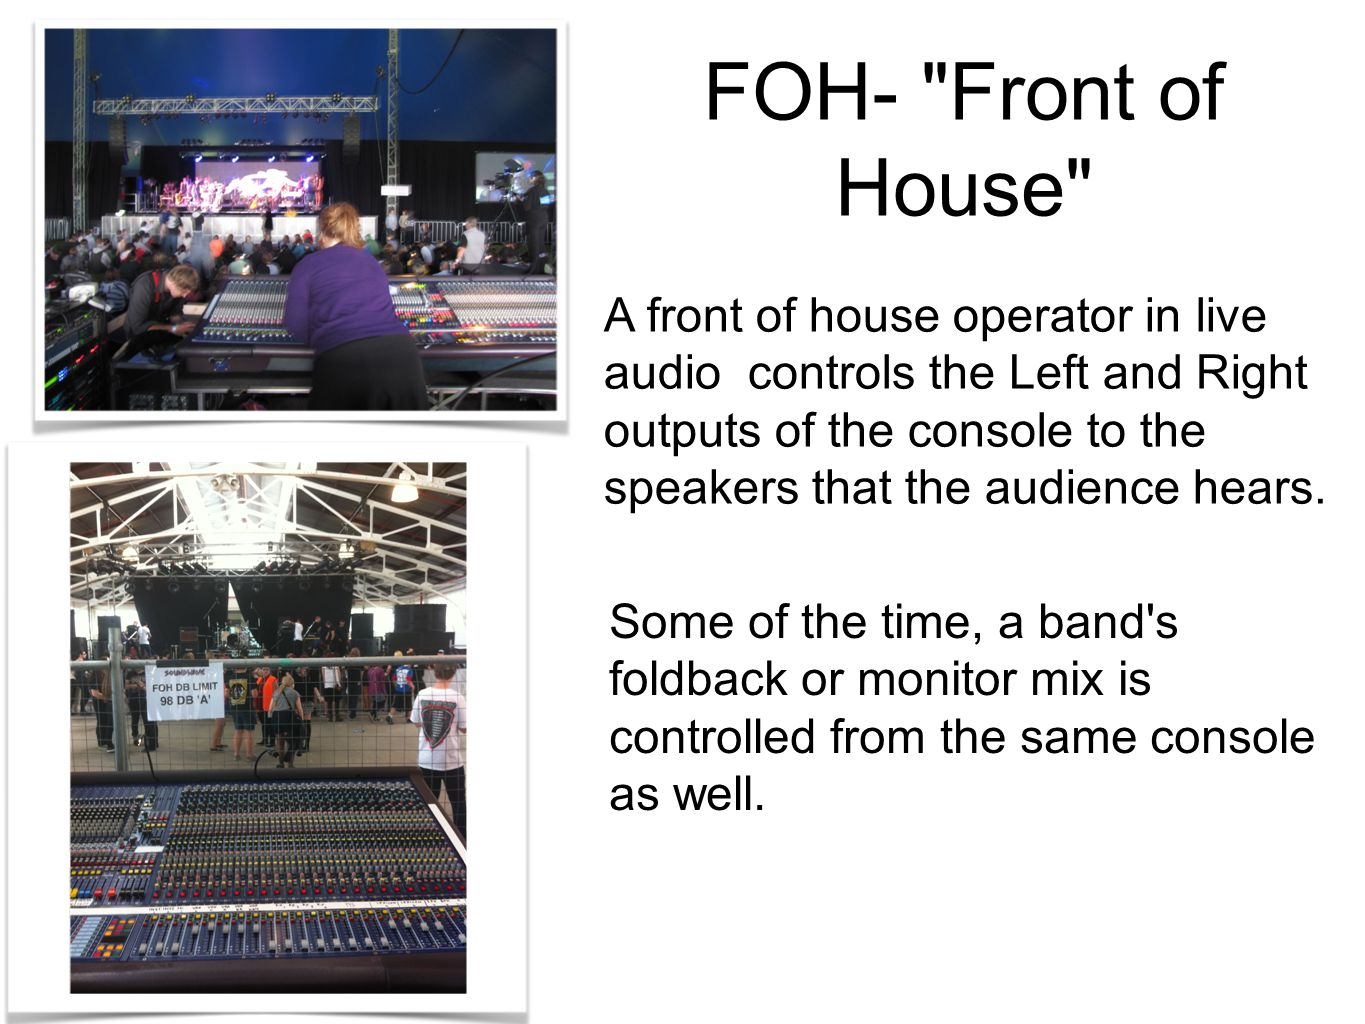 A front of house operator in live audio controls the Left and Right outputs of the console to the speakers that the audience hears.